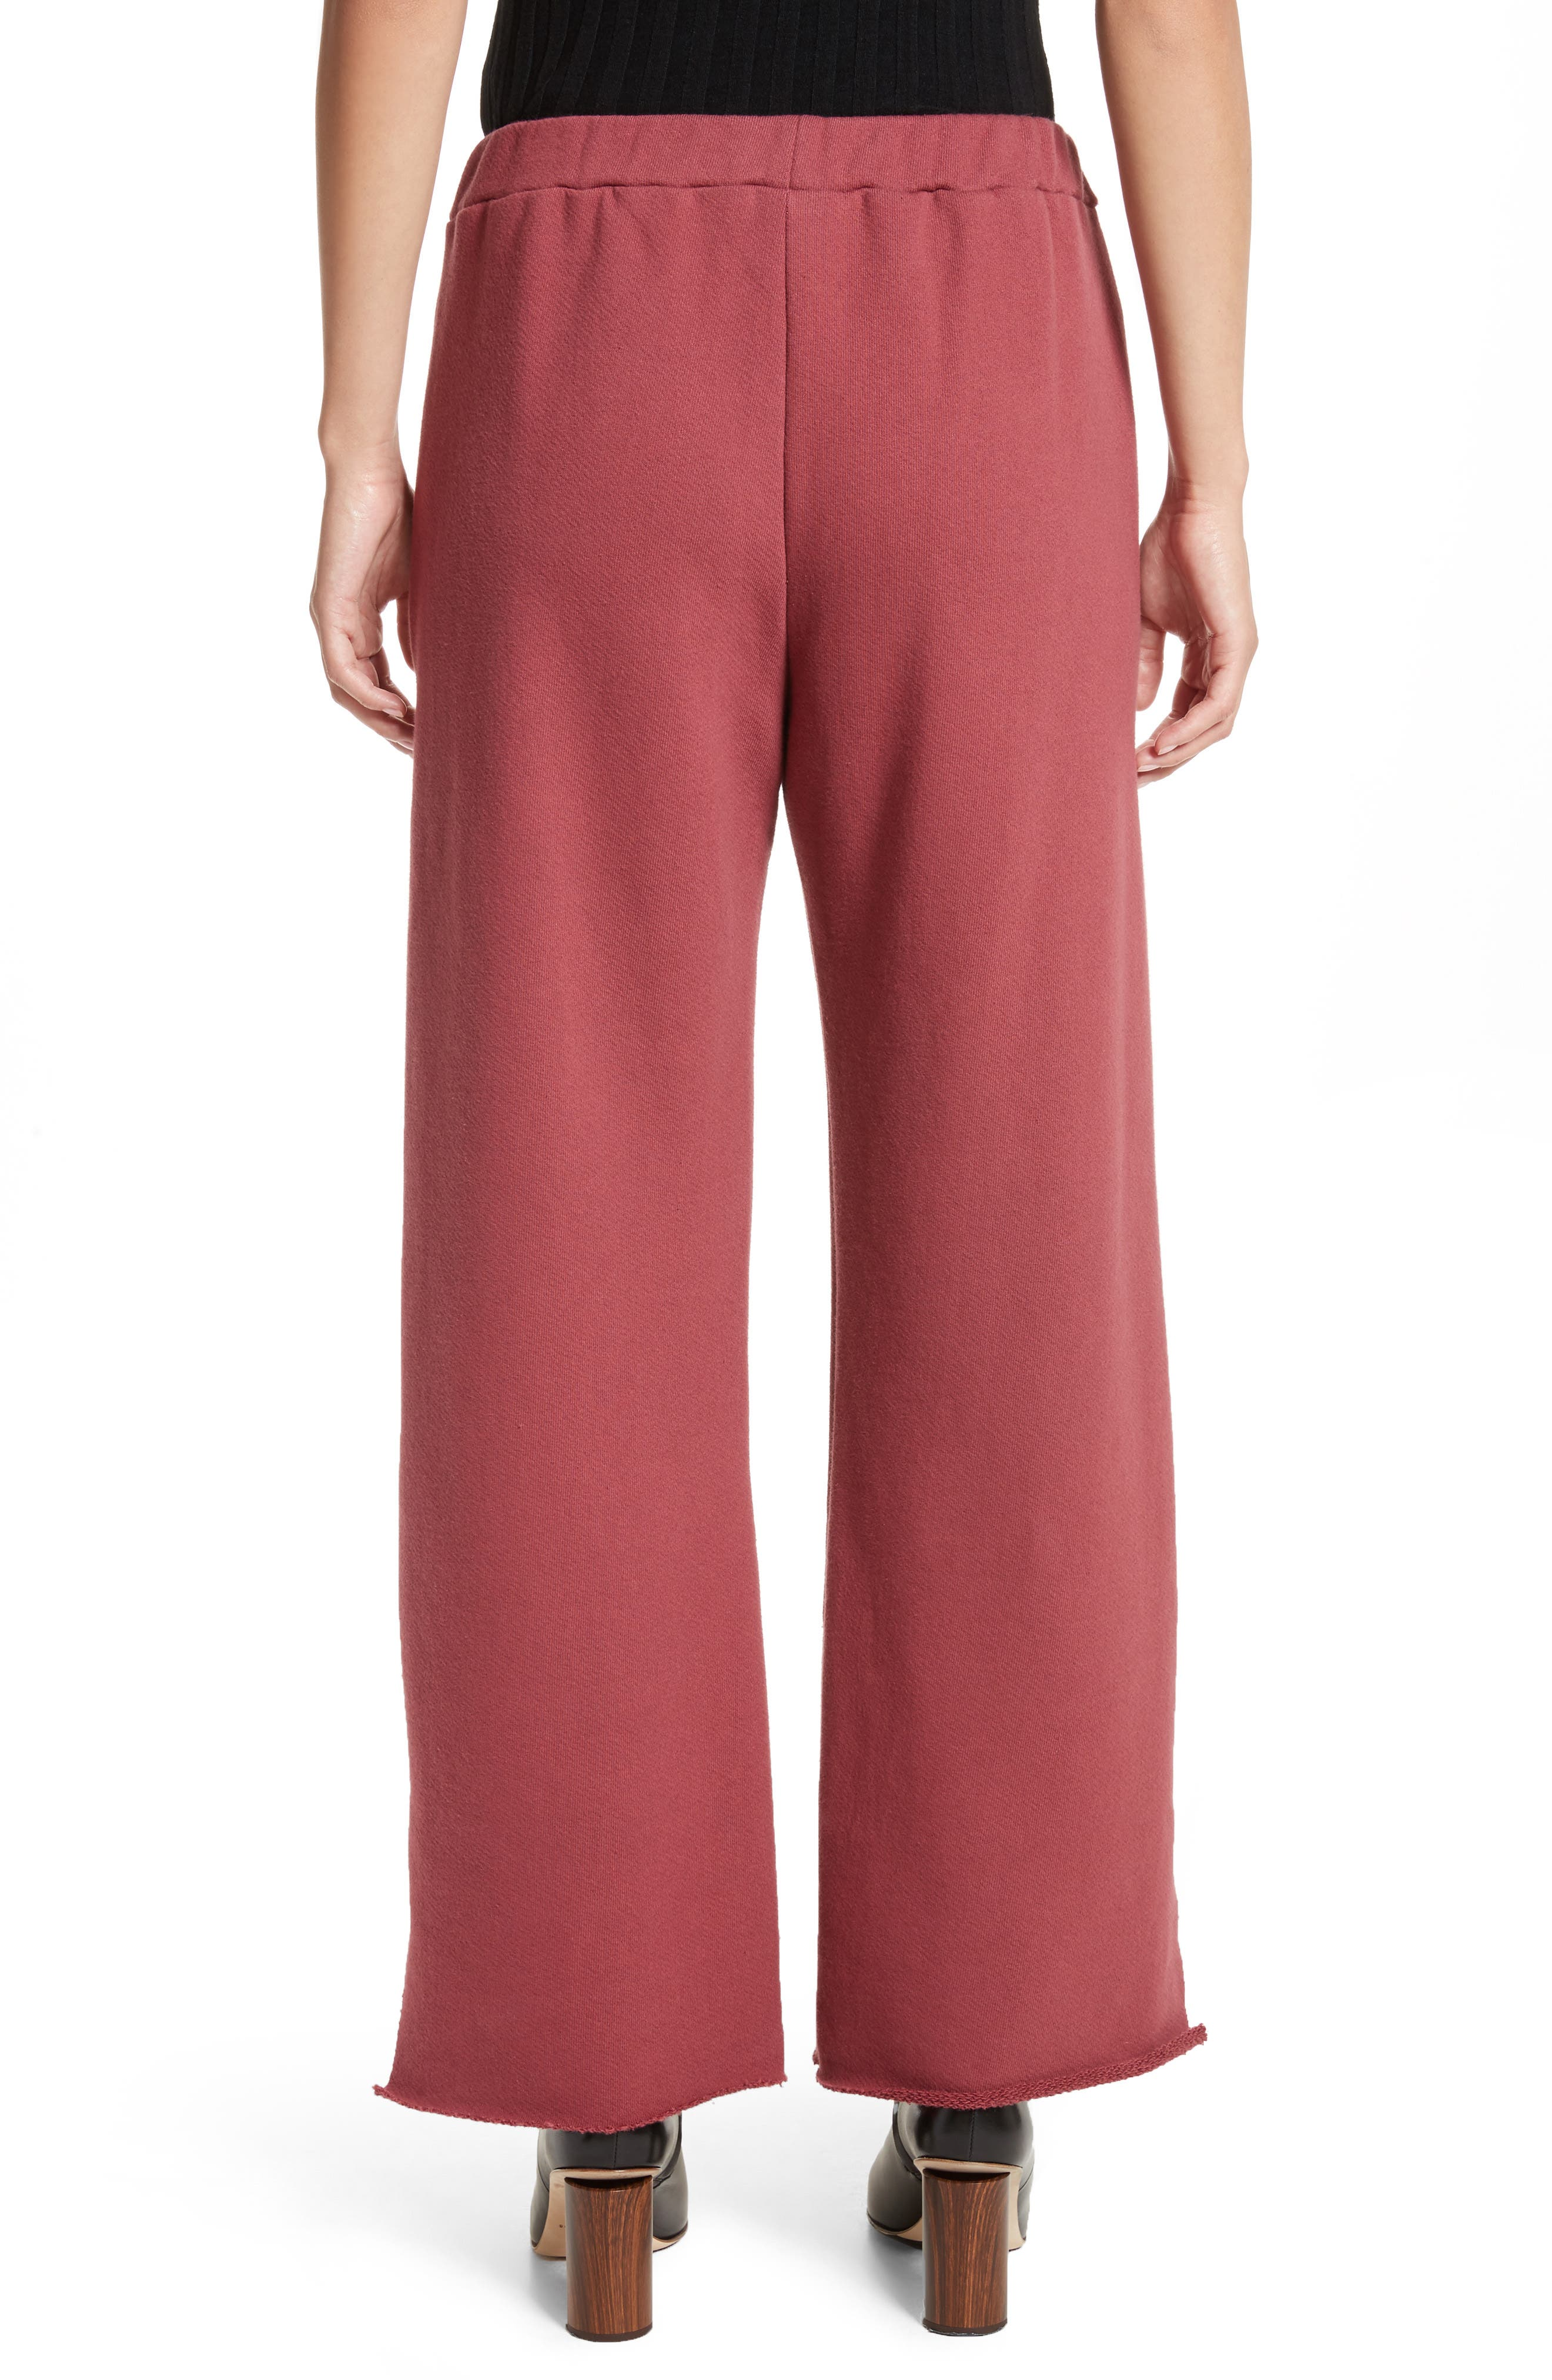 Canal French Terry Sweatpants,                             Alternate thumbnail 2, color,